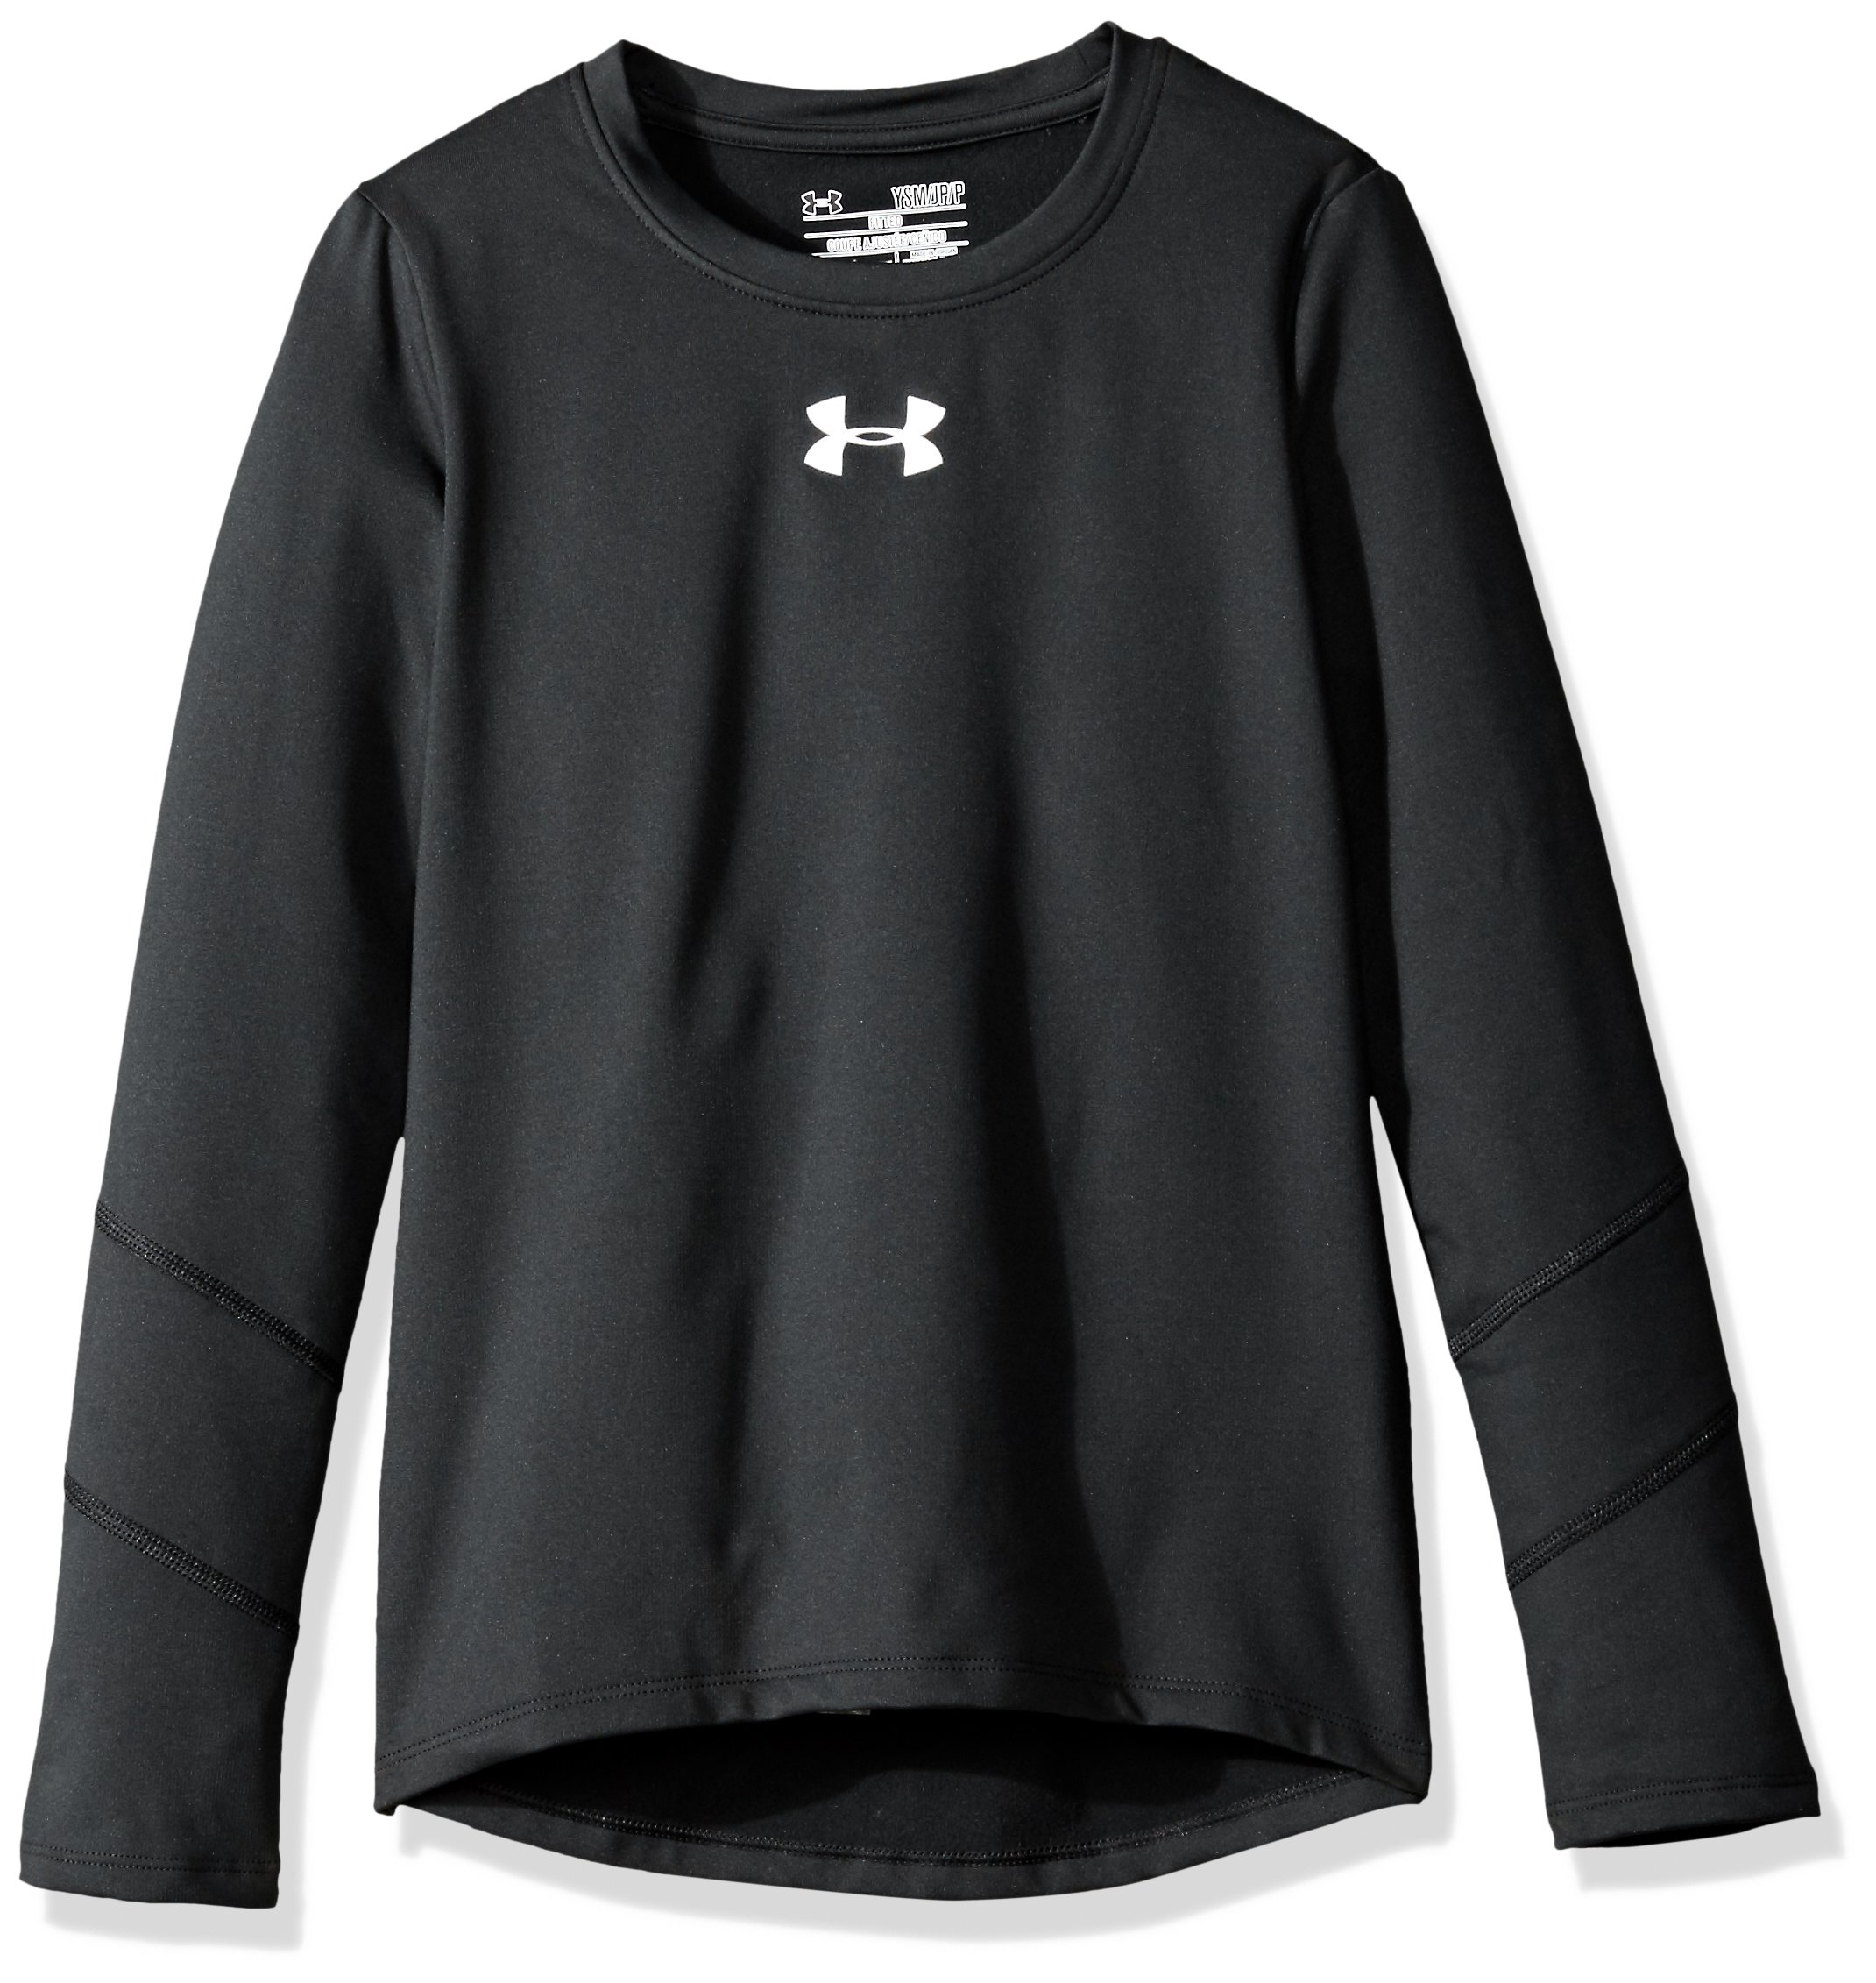 Under Armour Girls' ColdGear Long Sleeve, Black (001)/Reflective, Youth X-Small